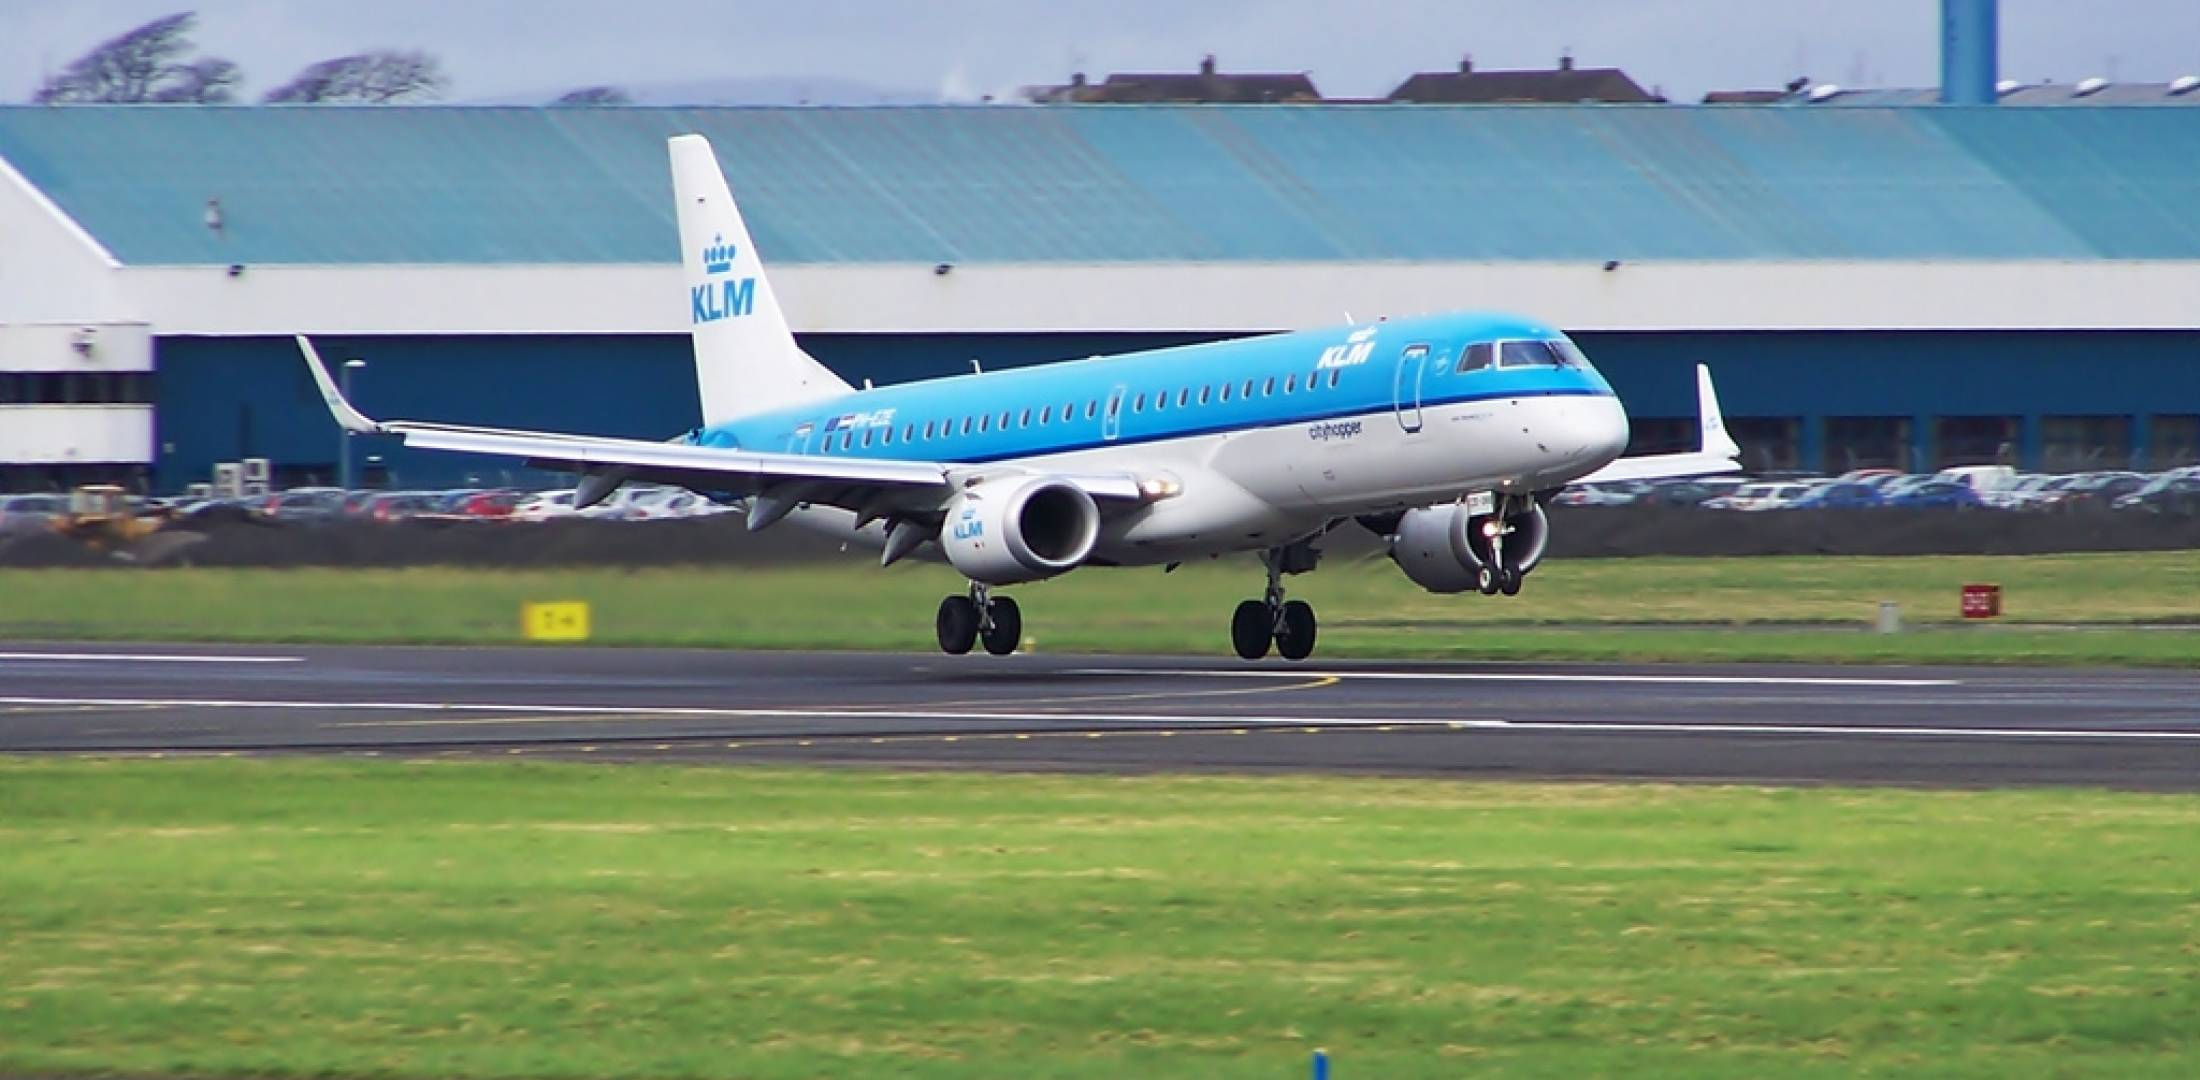 Klm Launches New Biofuel Initiative With Embraer 190 Air